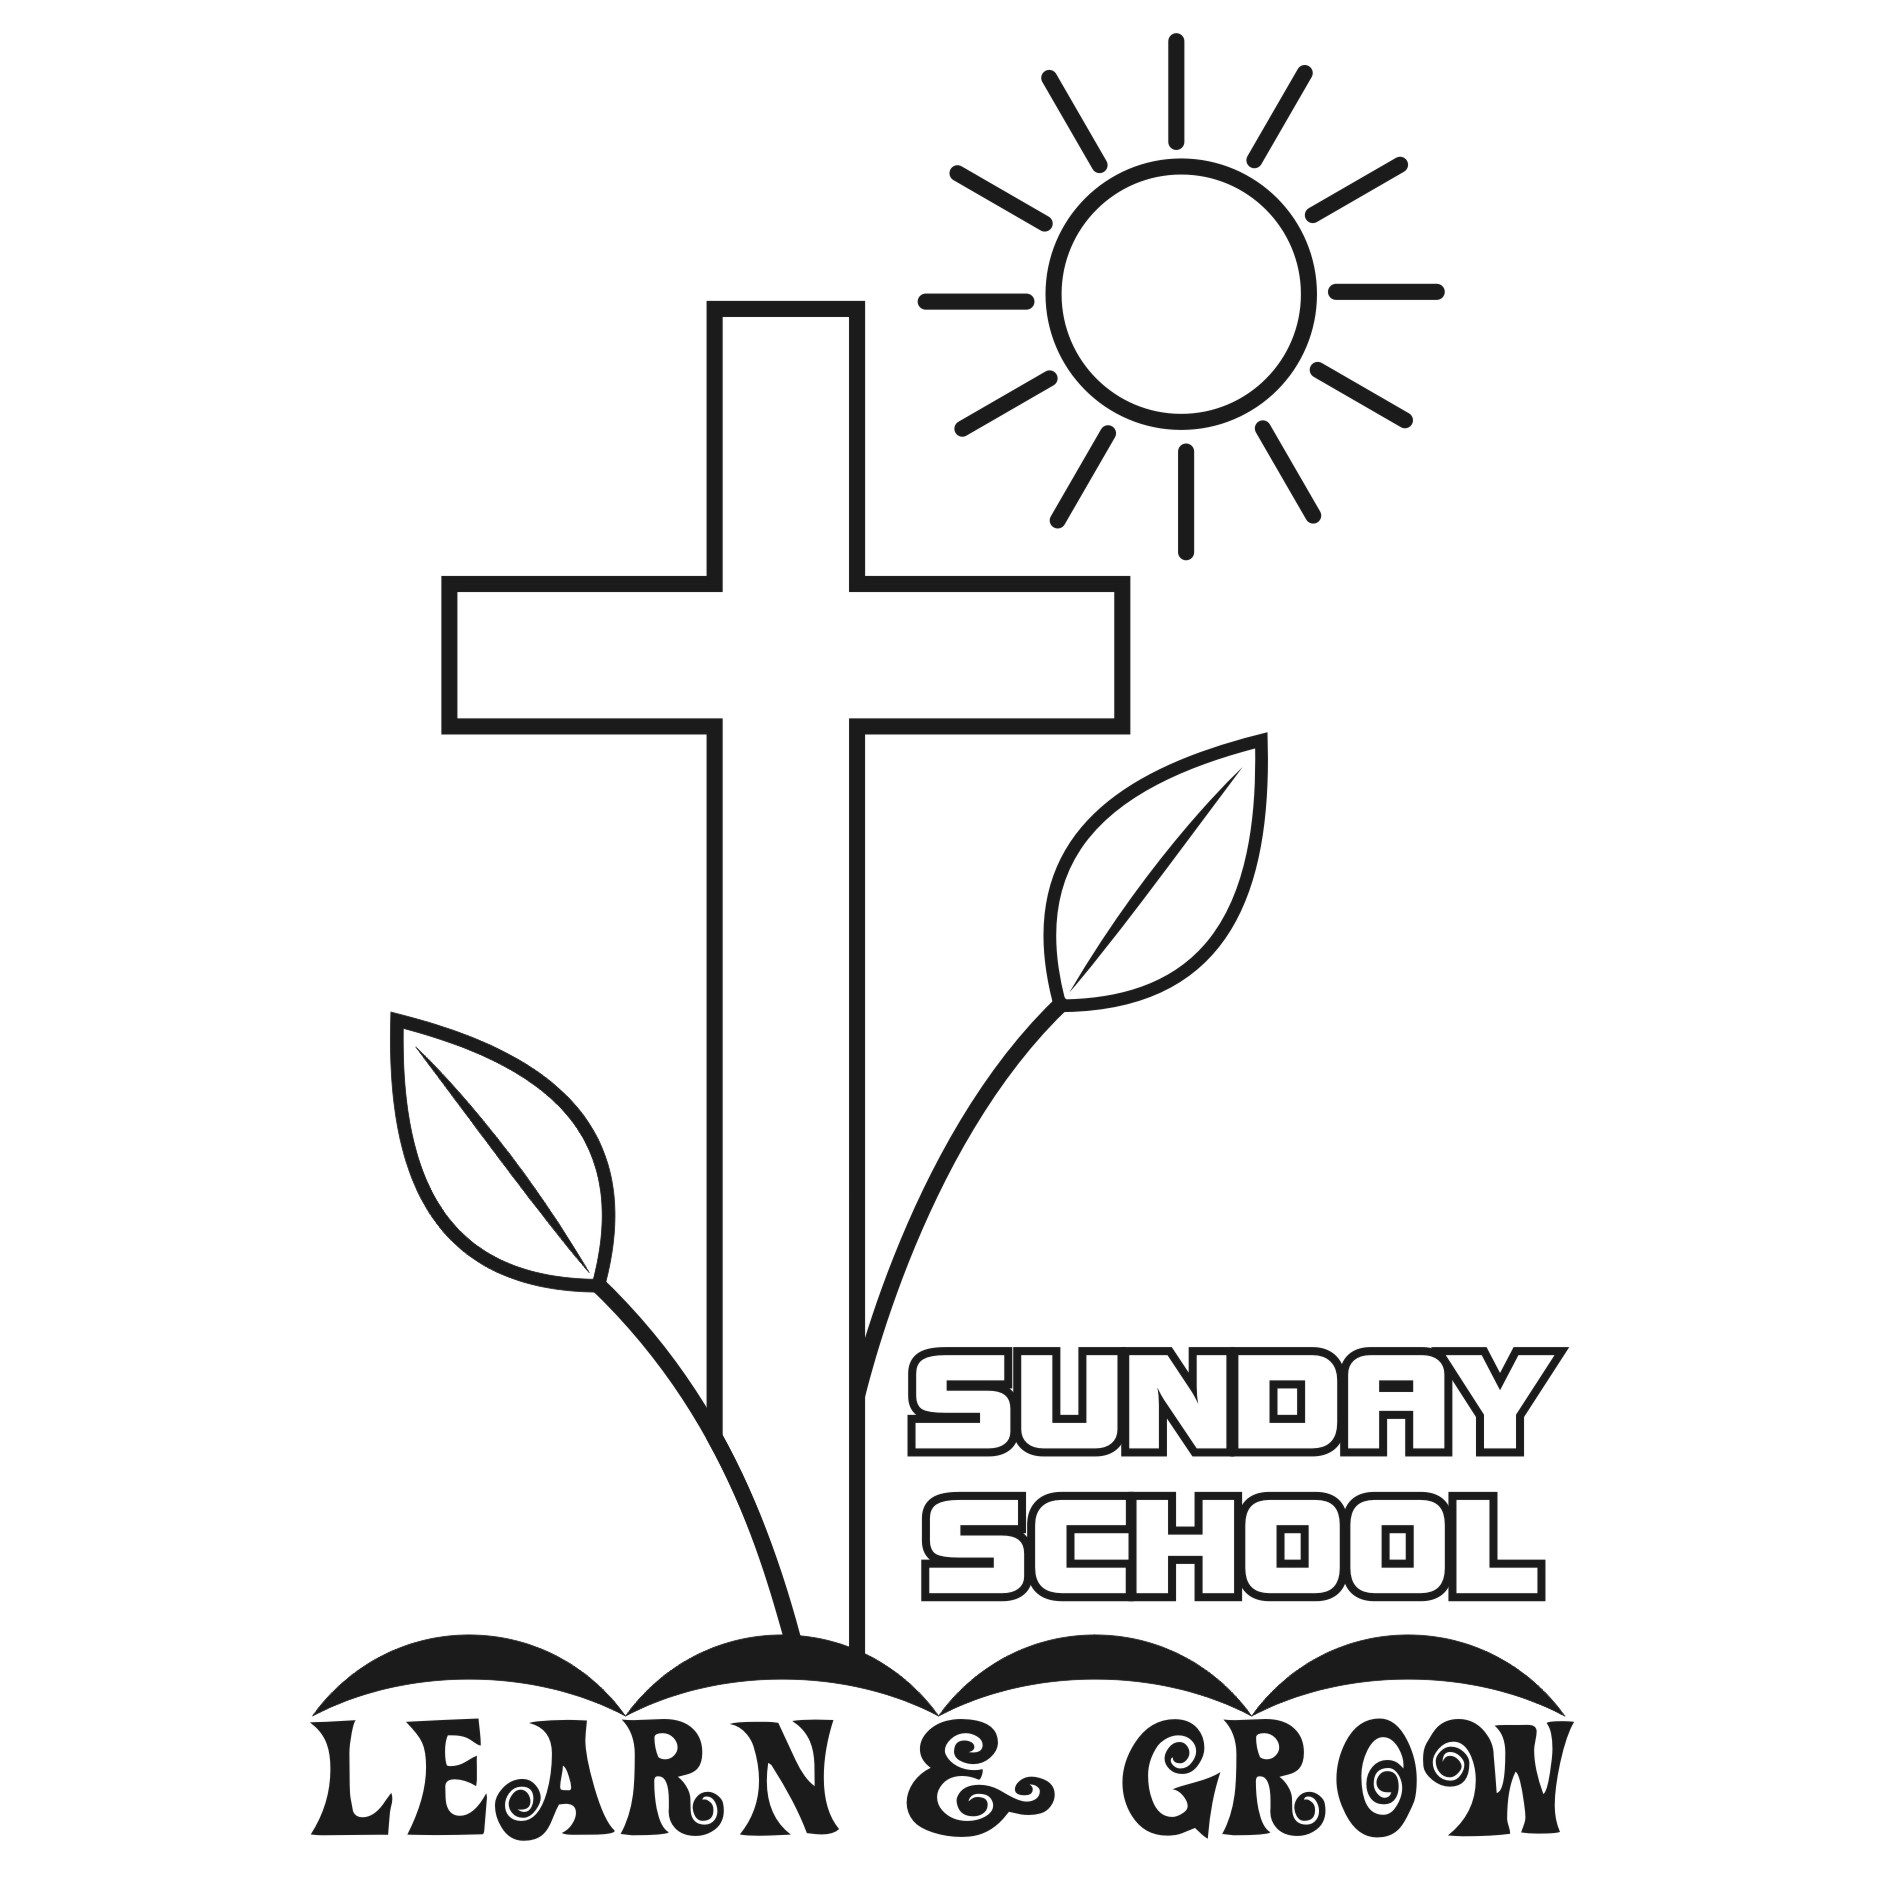 Clipart Of Children Sunday School.